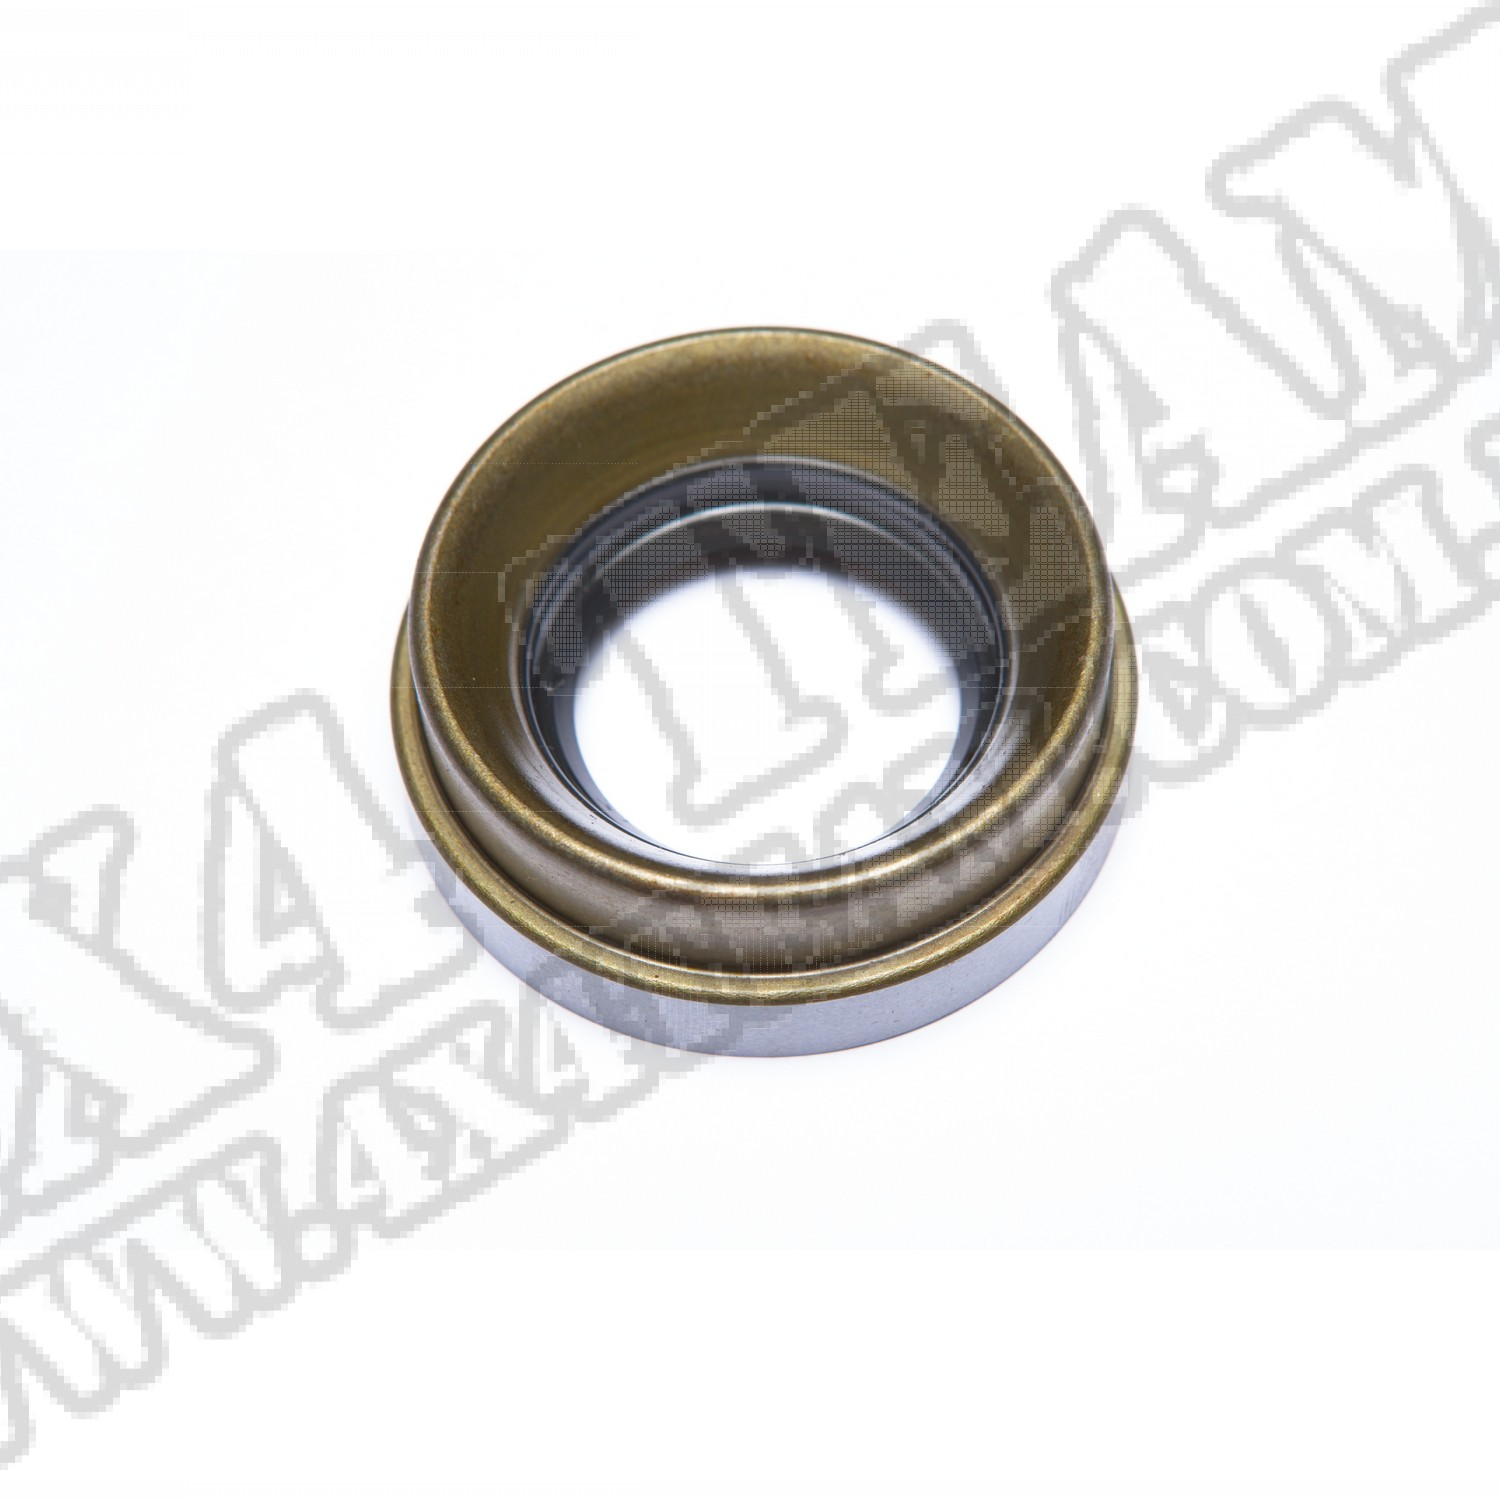 Axle Tube Seal, Inner; 94-01 Dodge RAM 1500/2500/3500, for Dana 44/60